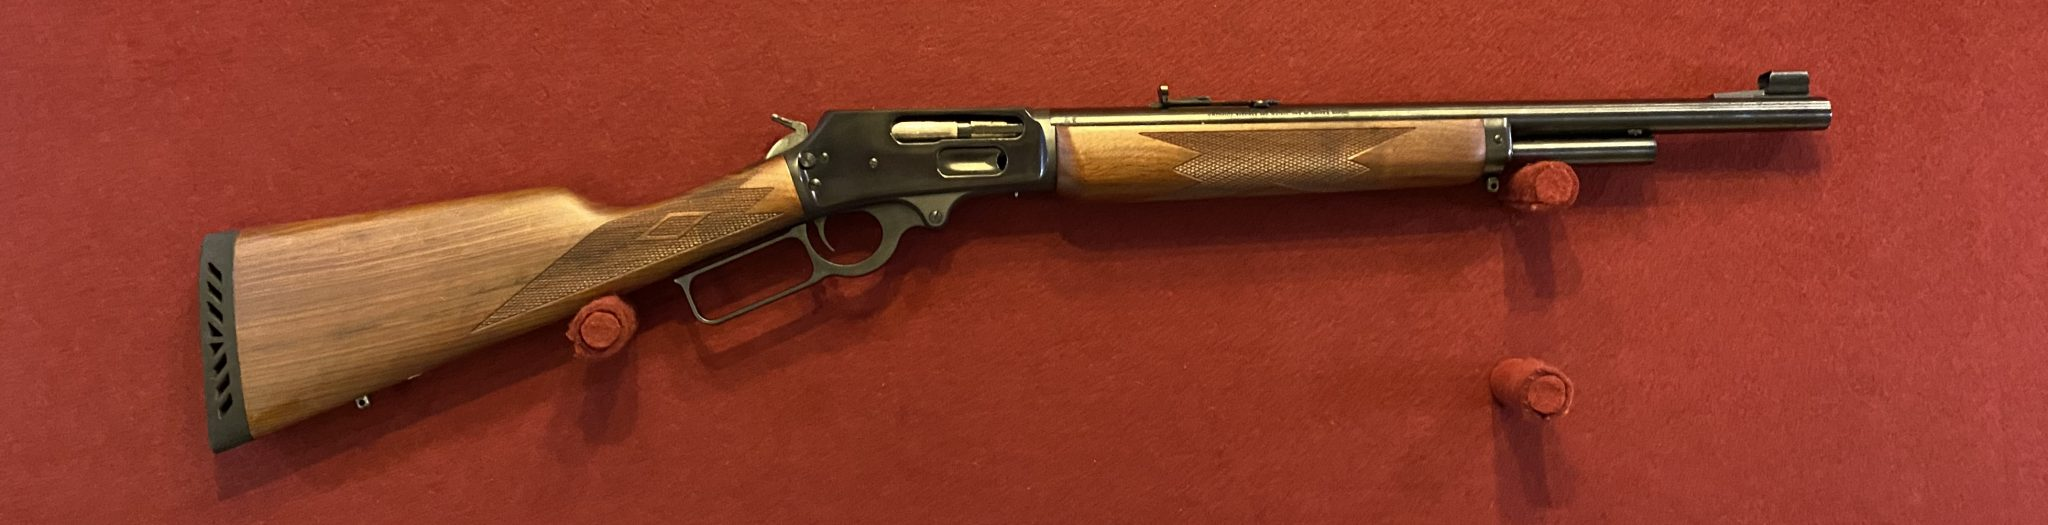 Marlin 1895 Lever Action